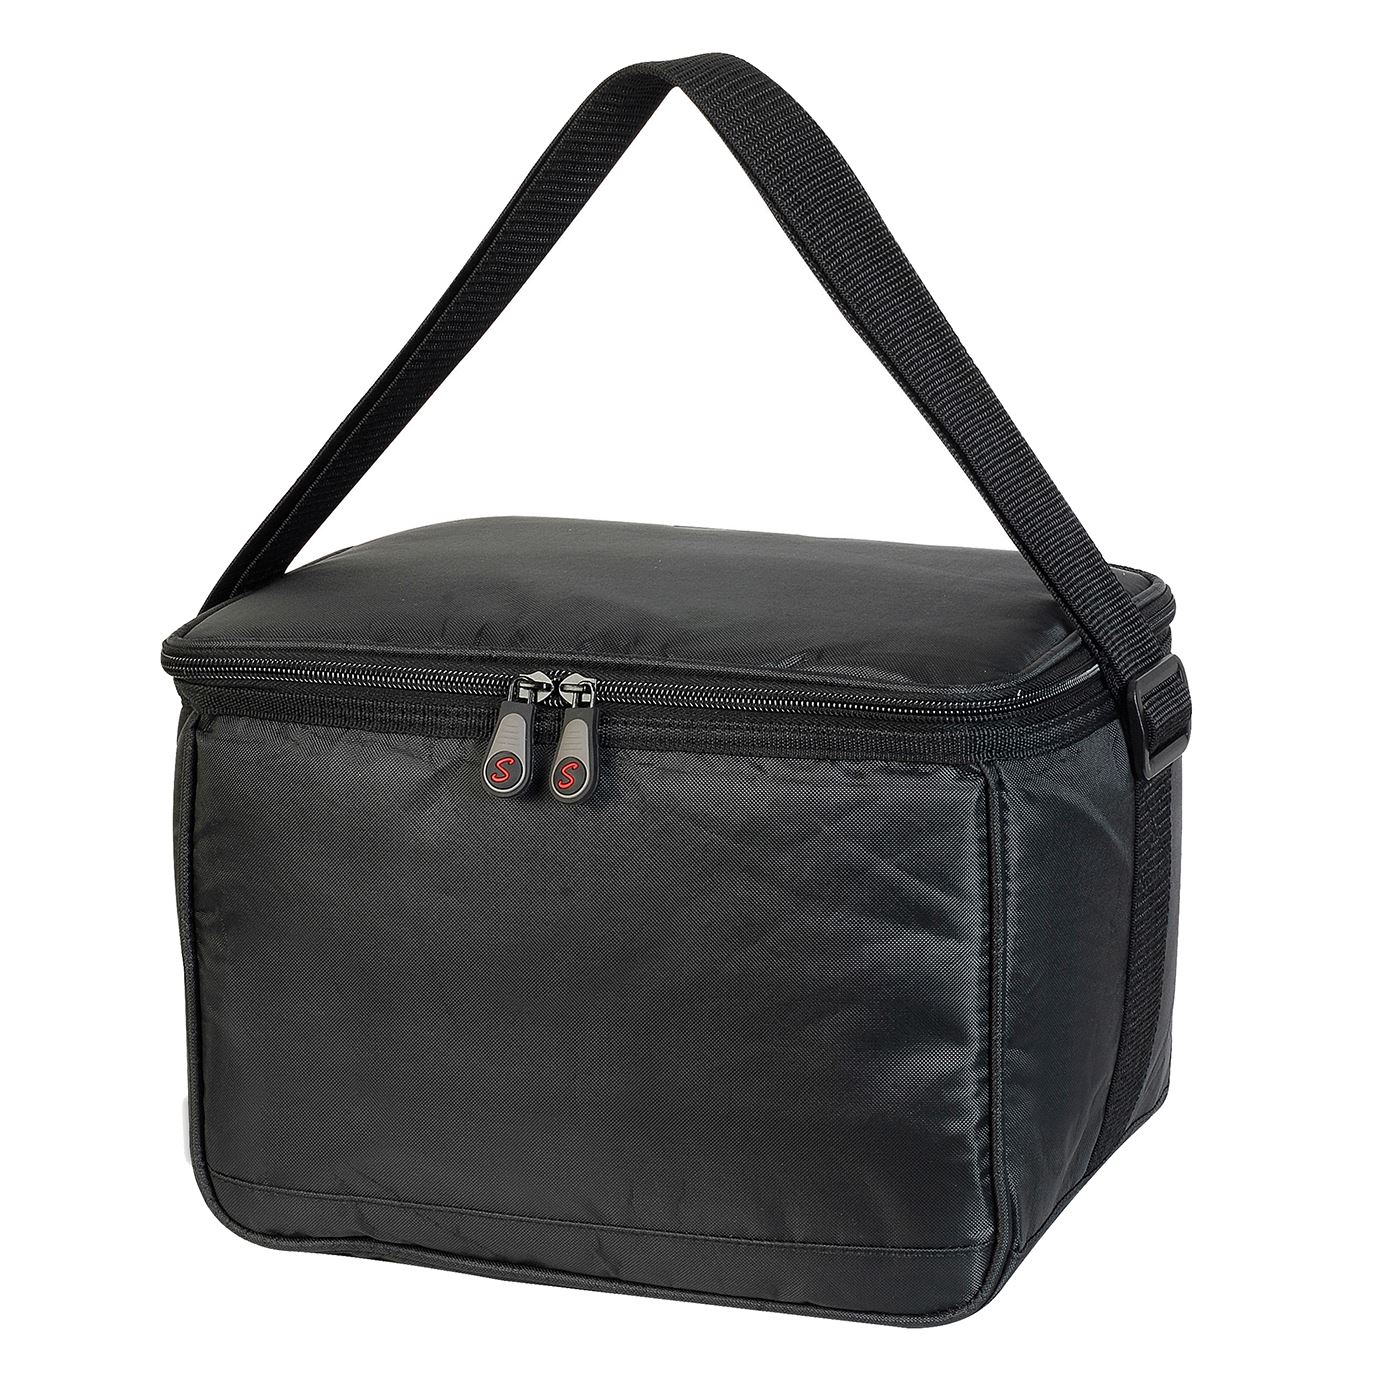 Woodstock Cooler Bag 1828 Shugon Bags Leather Goods Coolerbag Picture Of Black